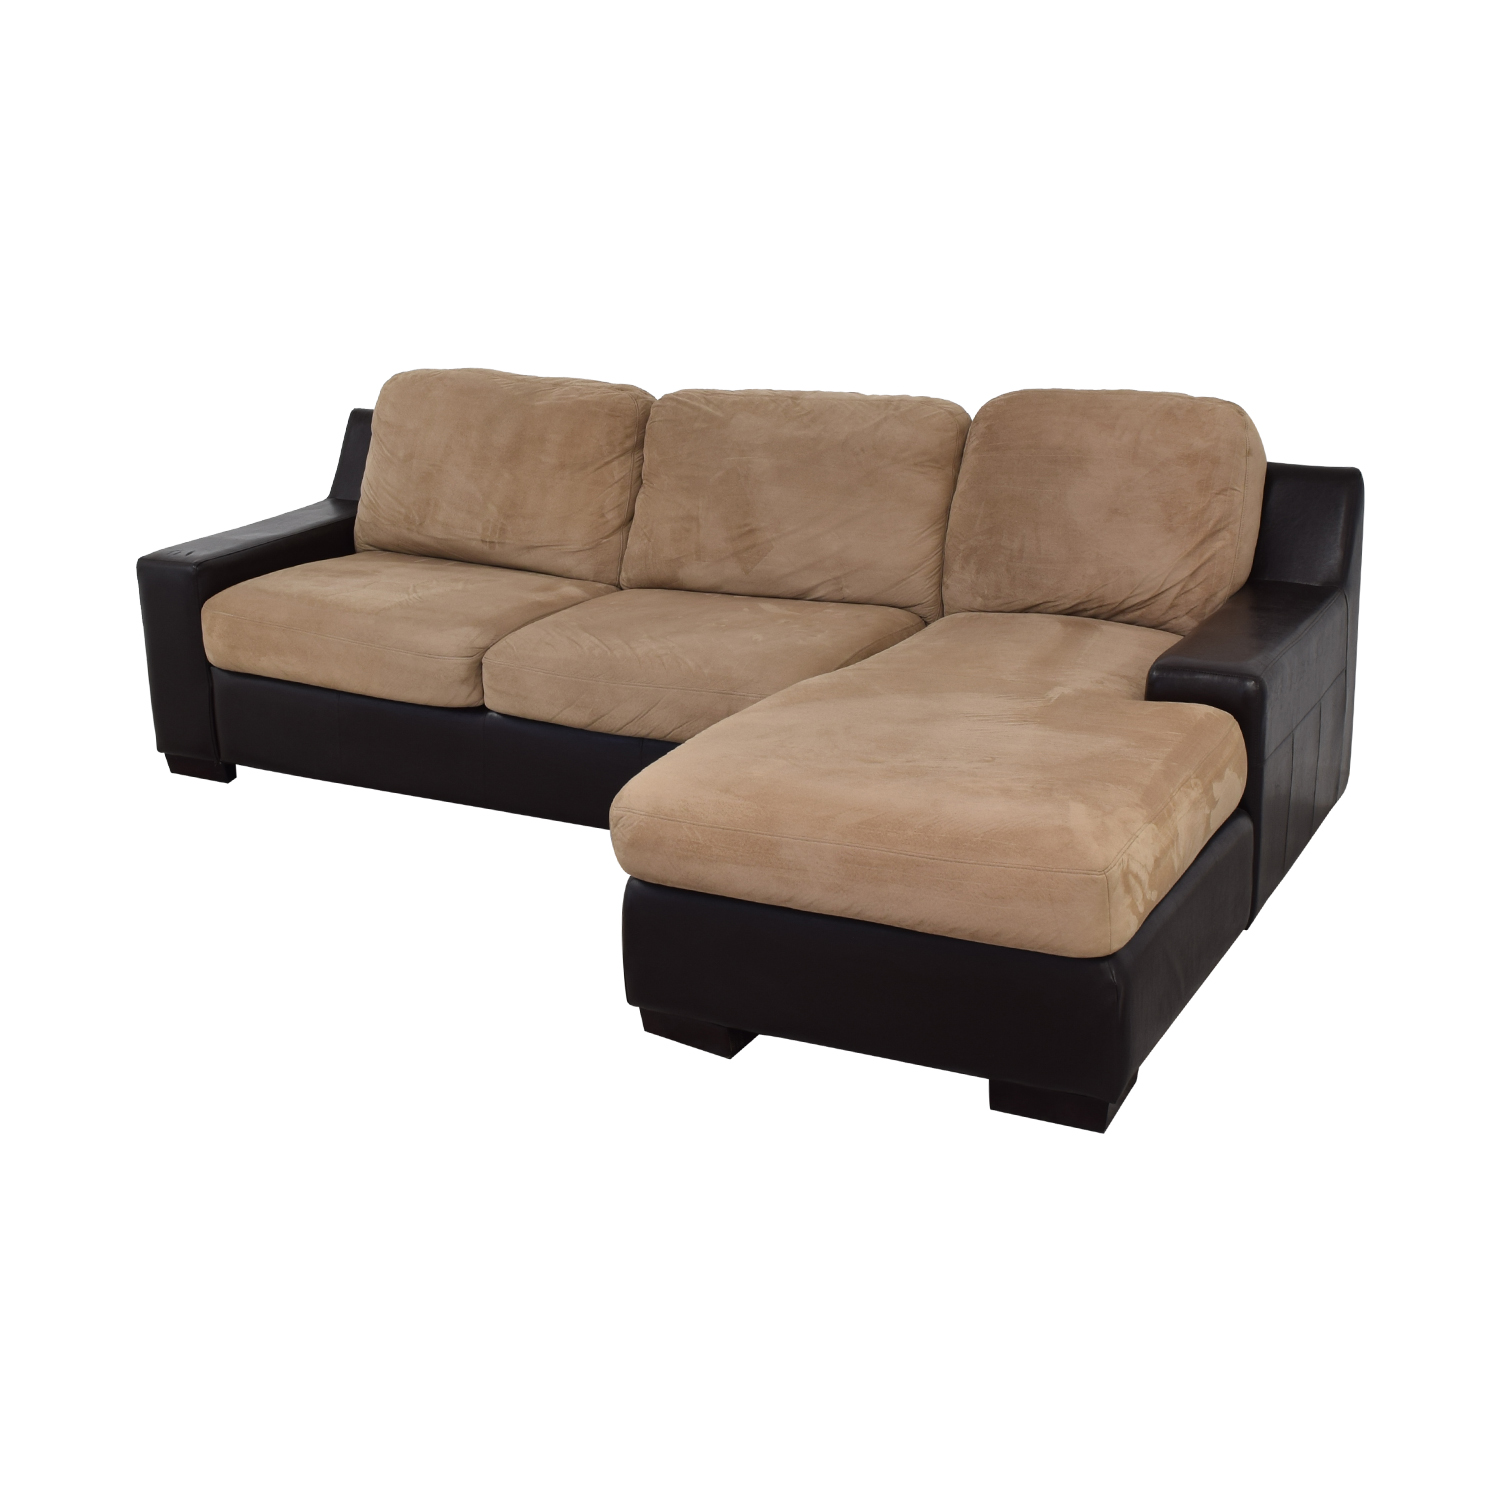 Red Barrel Studio Red Barrel Studio Swinyer Two-Toned Sectional coupon